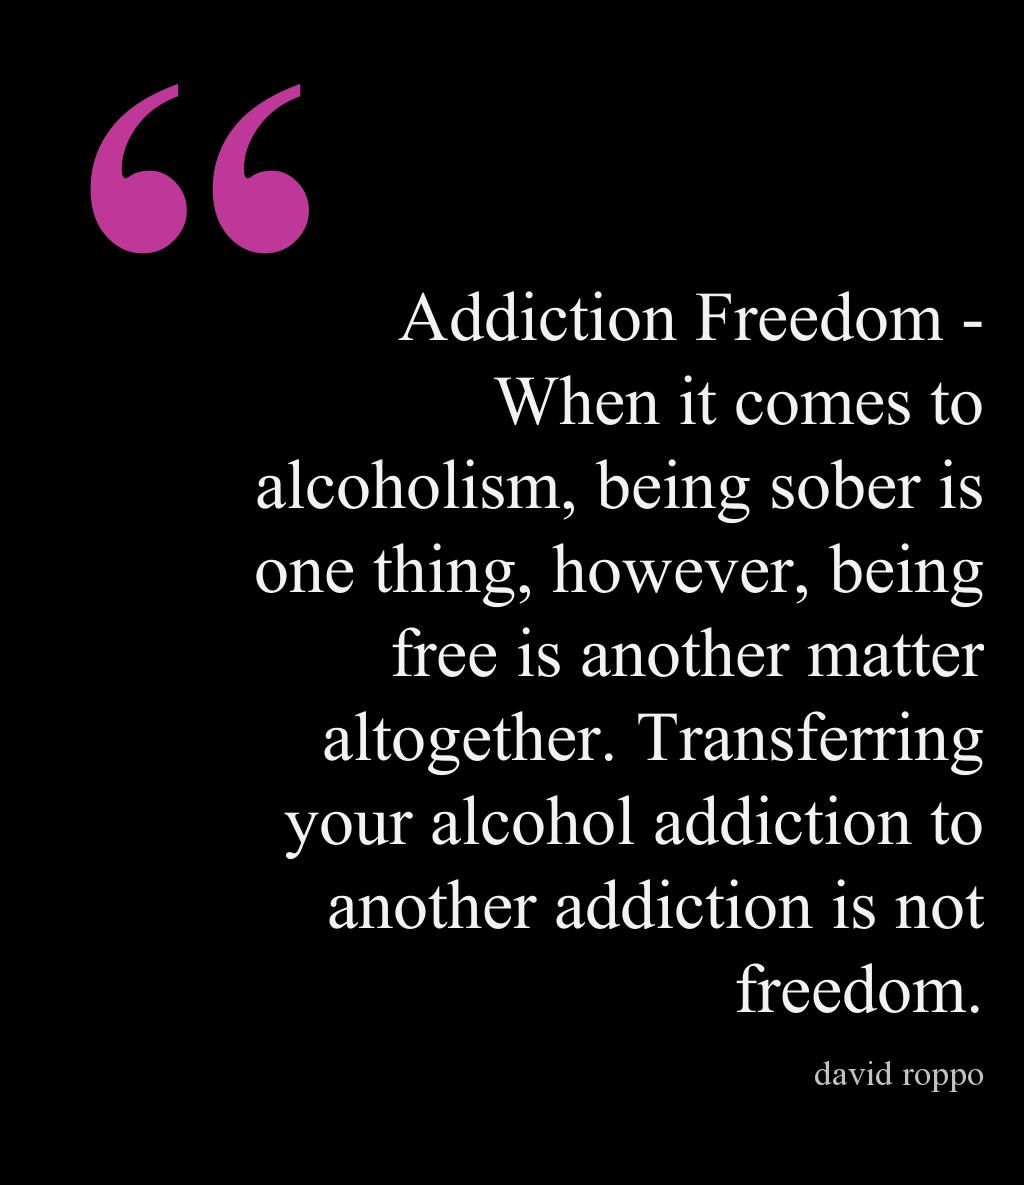 FREE E-COURSE! How to beat addiction, and transform your life, without ever leaving home. Down load my free e-course and audio! http://www.davidroppo.com/overcomingaddiction.html